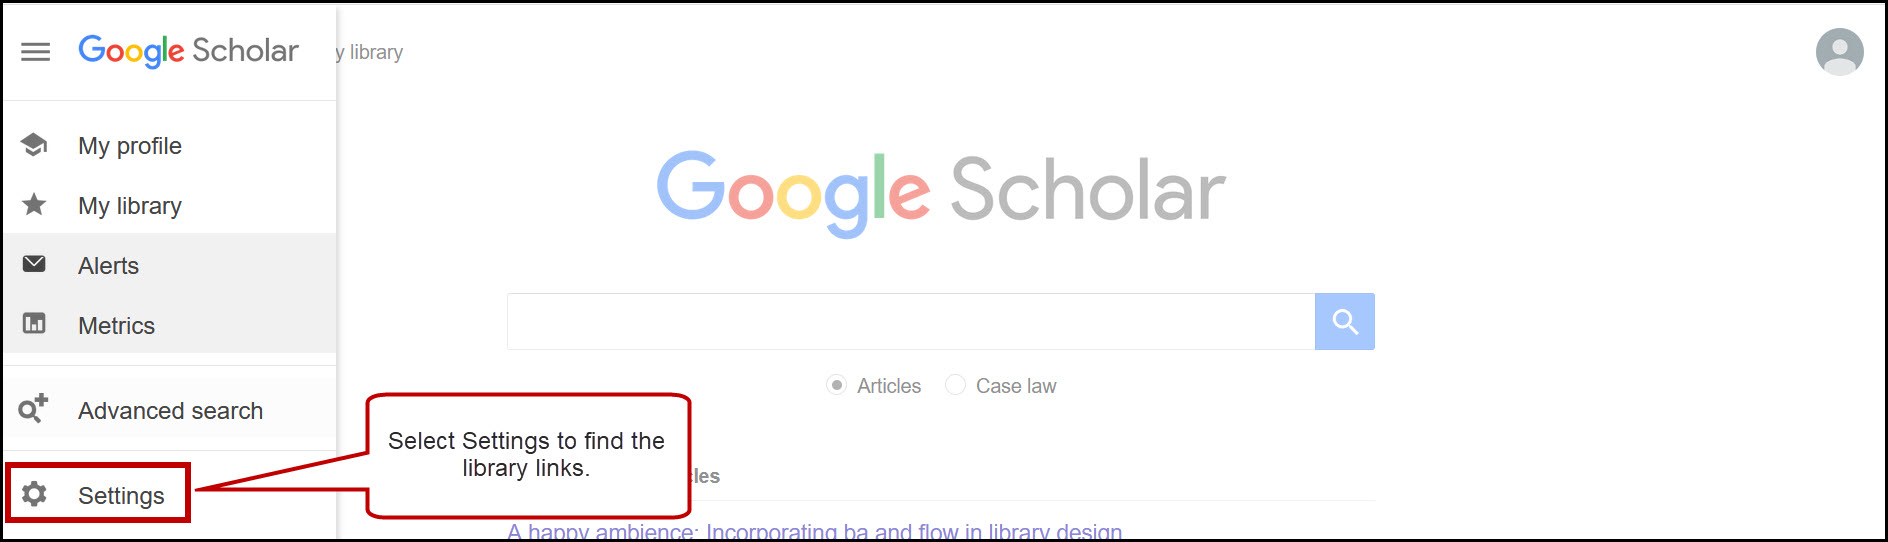 Google Scholar home page with the menu open, and Settings option circled.